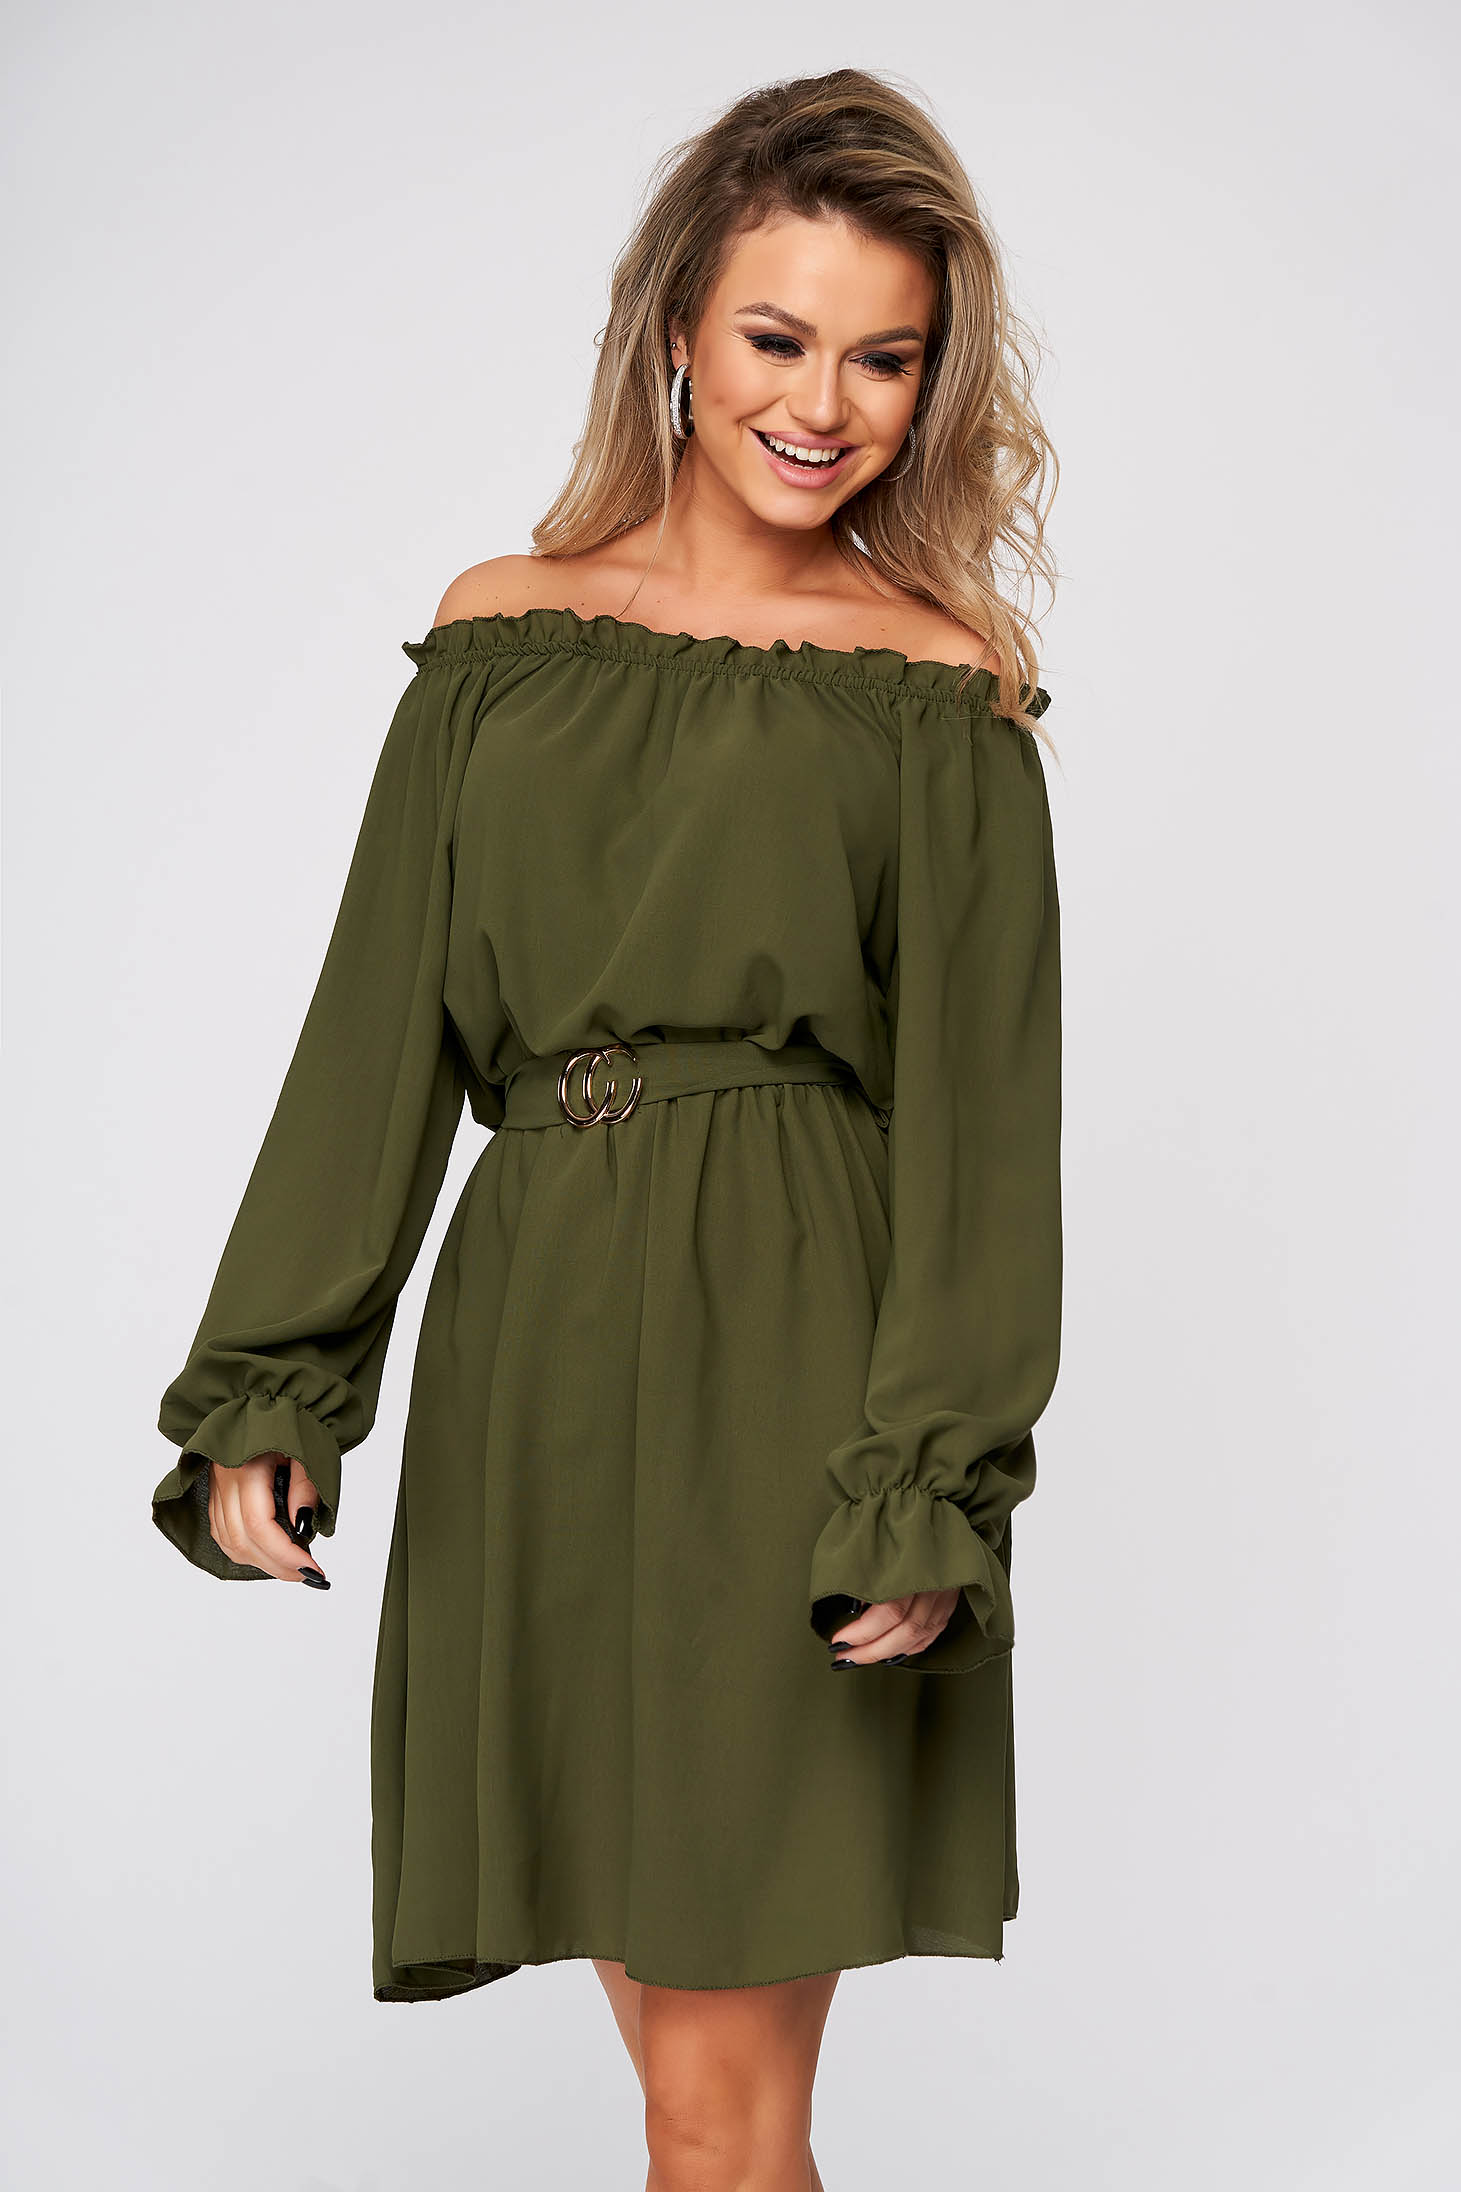 Green dress short cut daily thin fabric naked shoulders straight